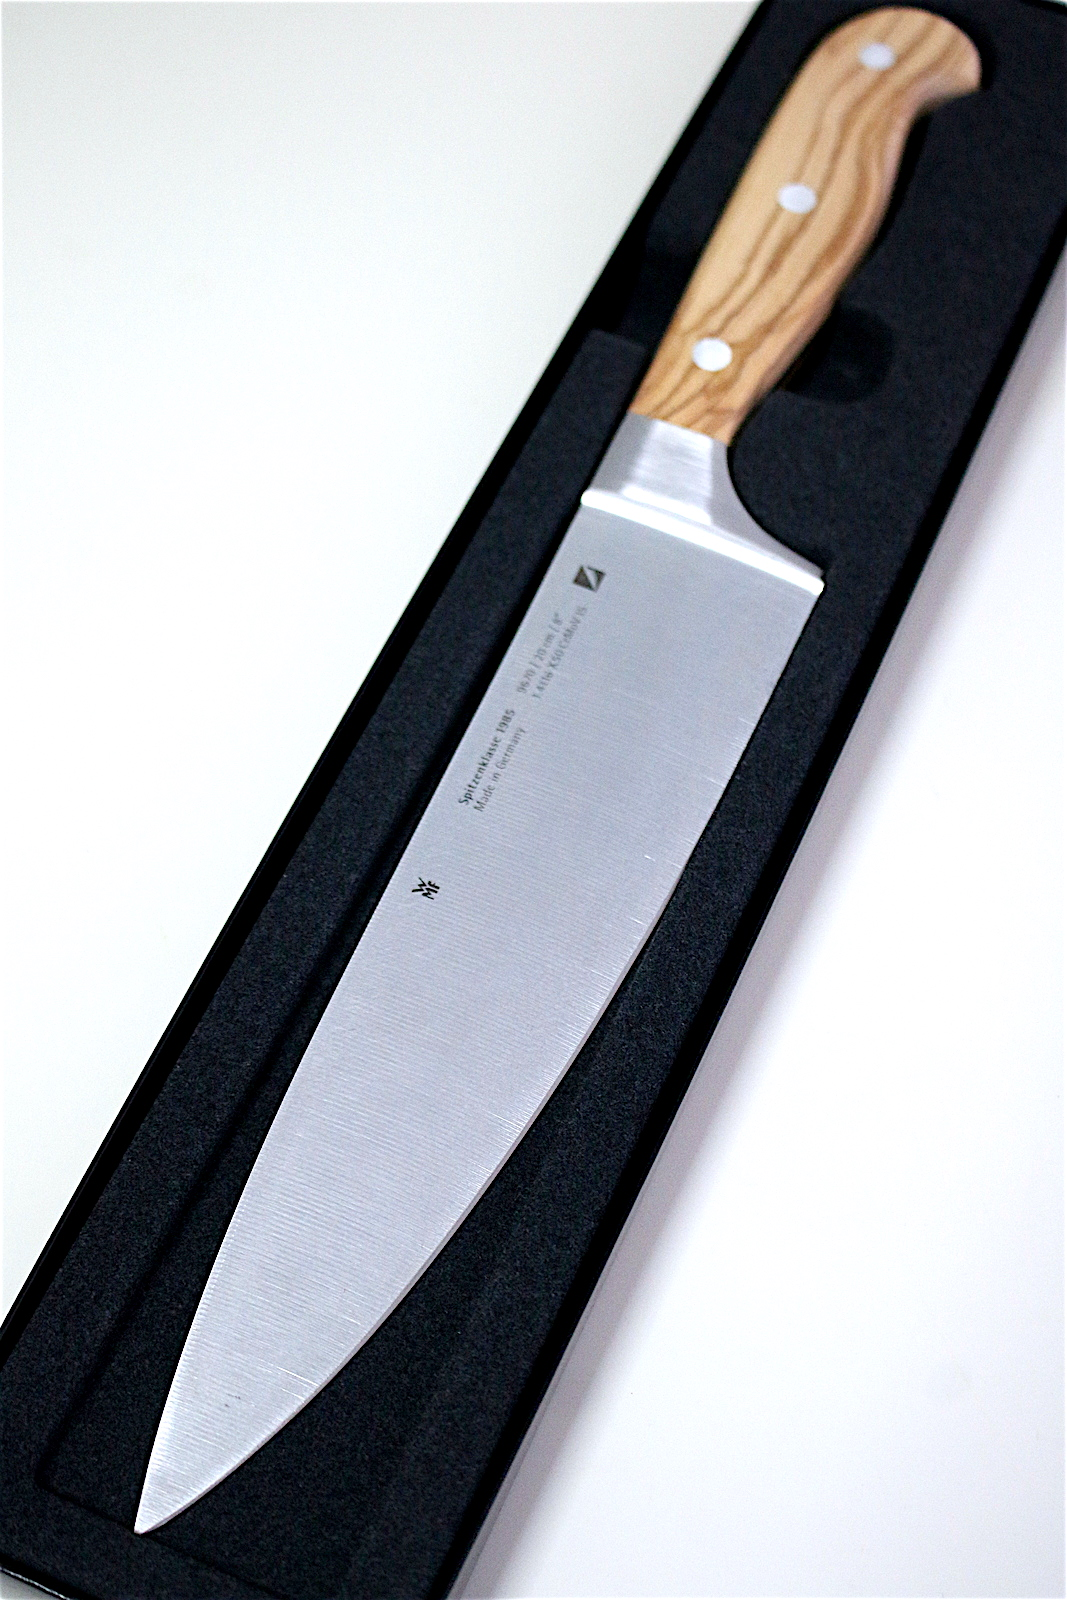 wmf spitzenklasse 1985 chef s knife and chef edition knives camemberu. Black Bedroom Furniture Sets. Home Design Ideas